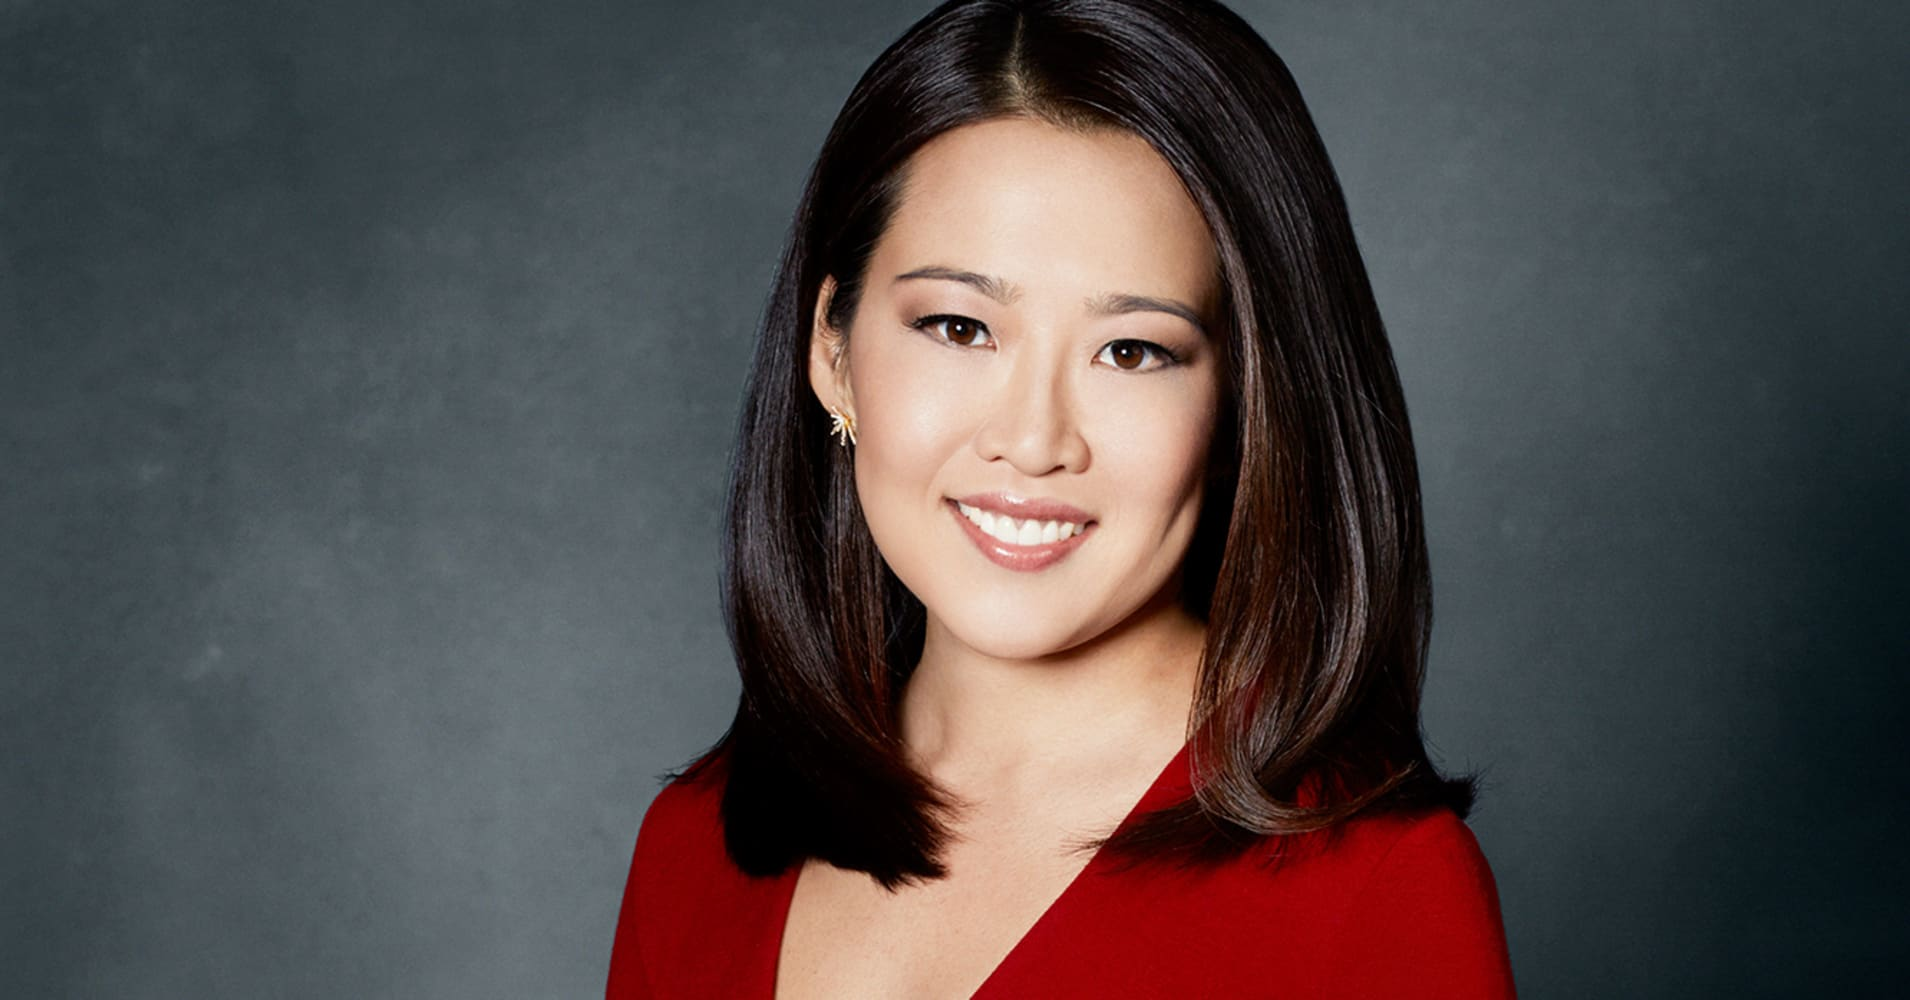 Aged 42, Gorgeous CNBC Journalist Melissa Lee